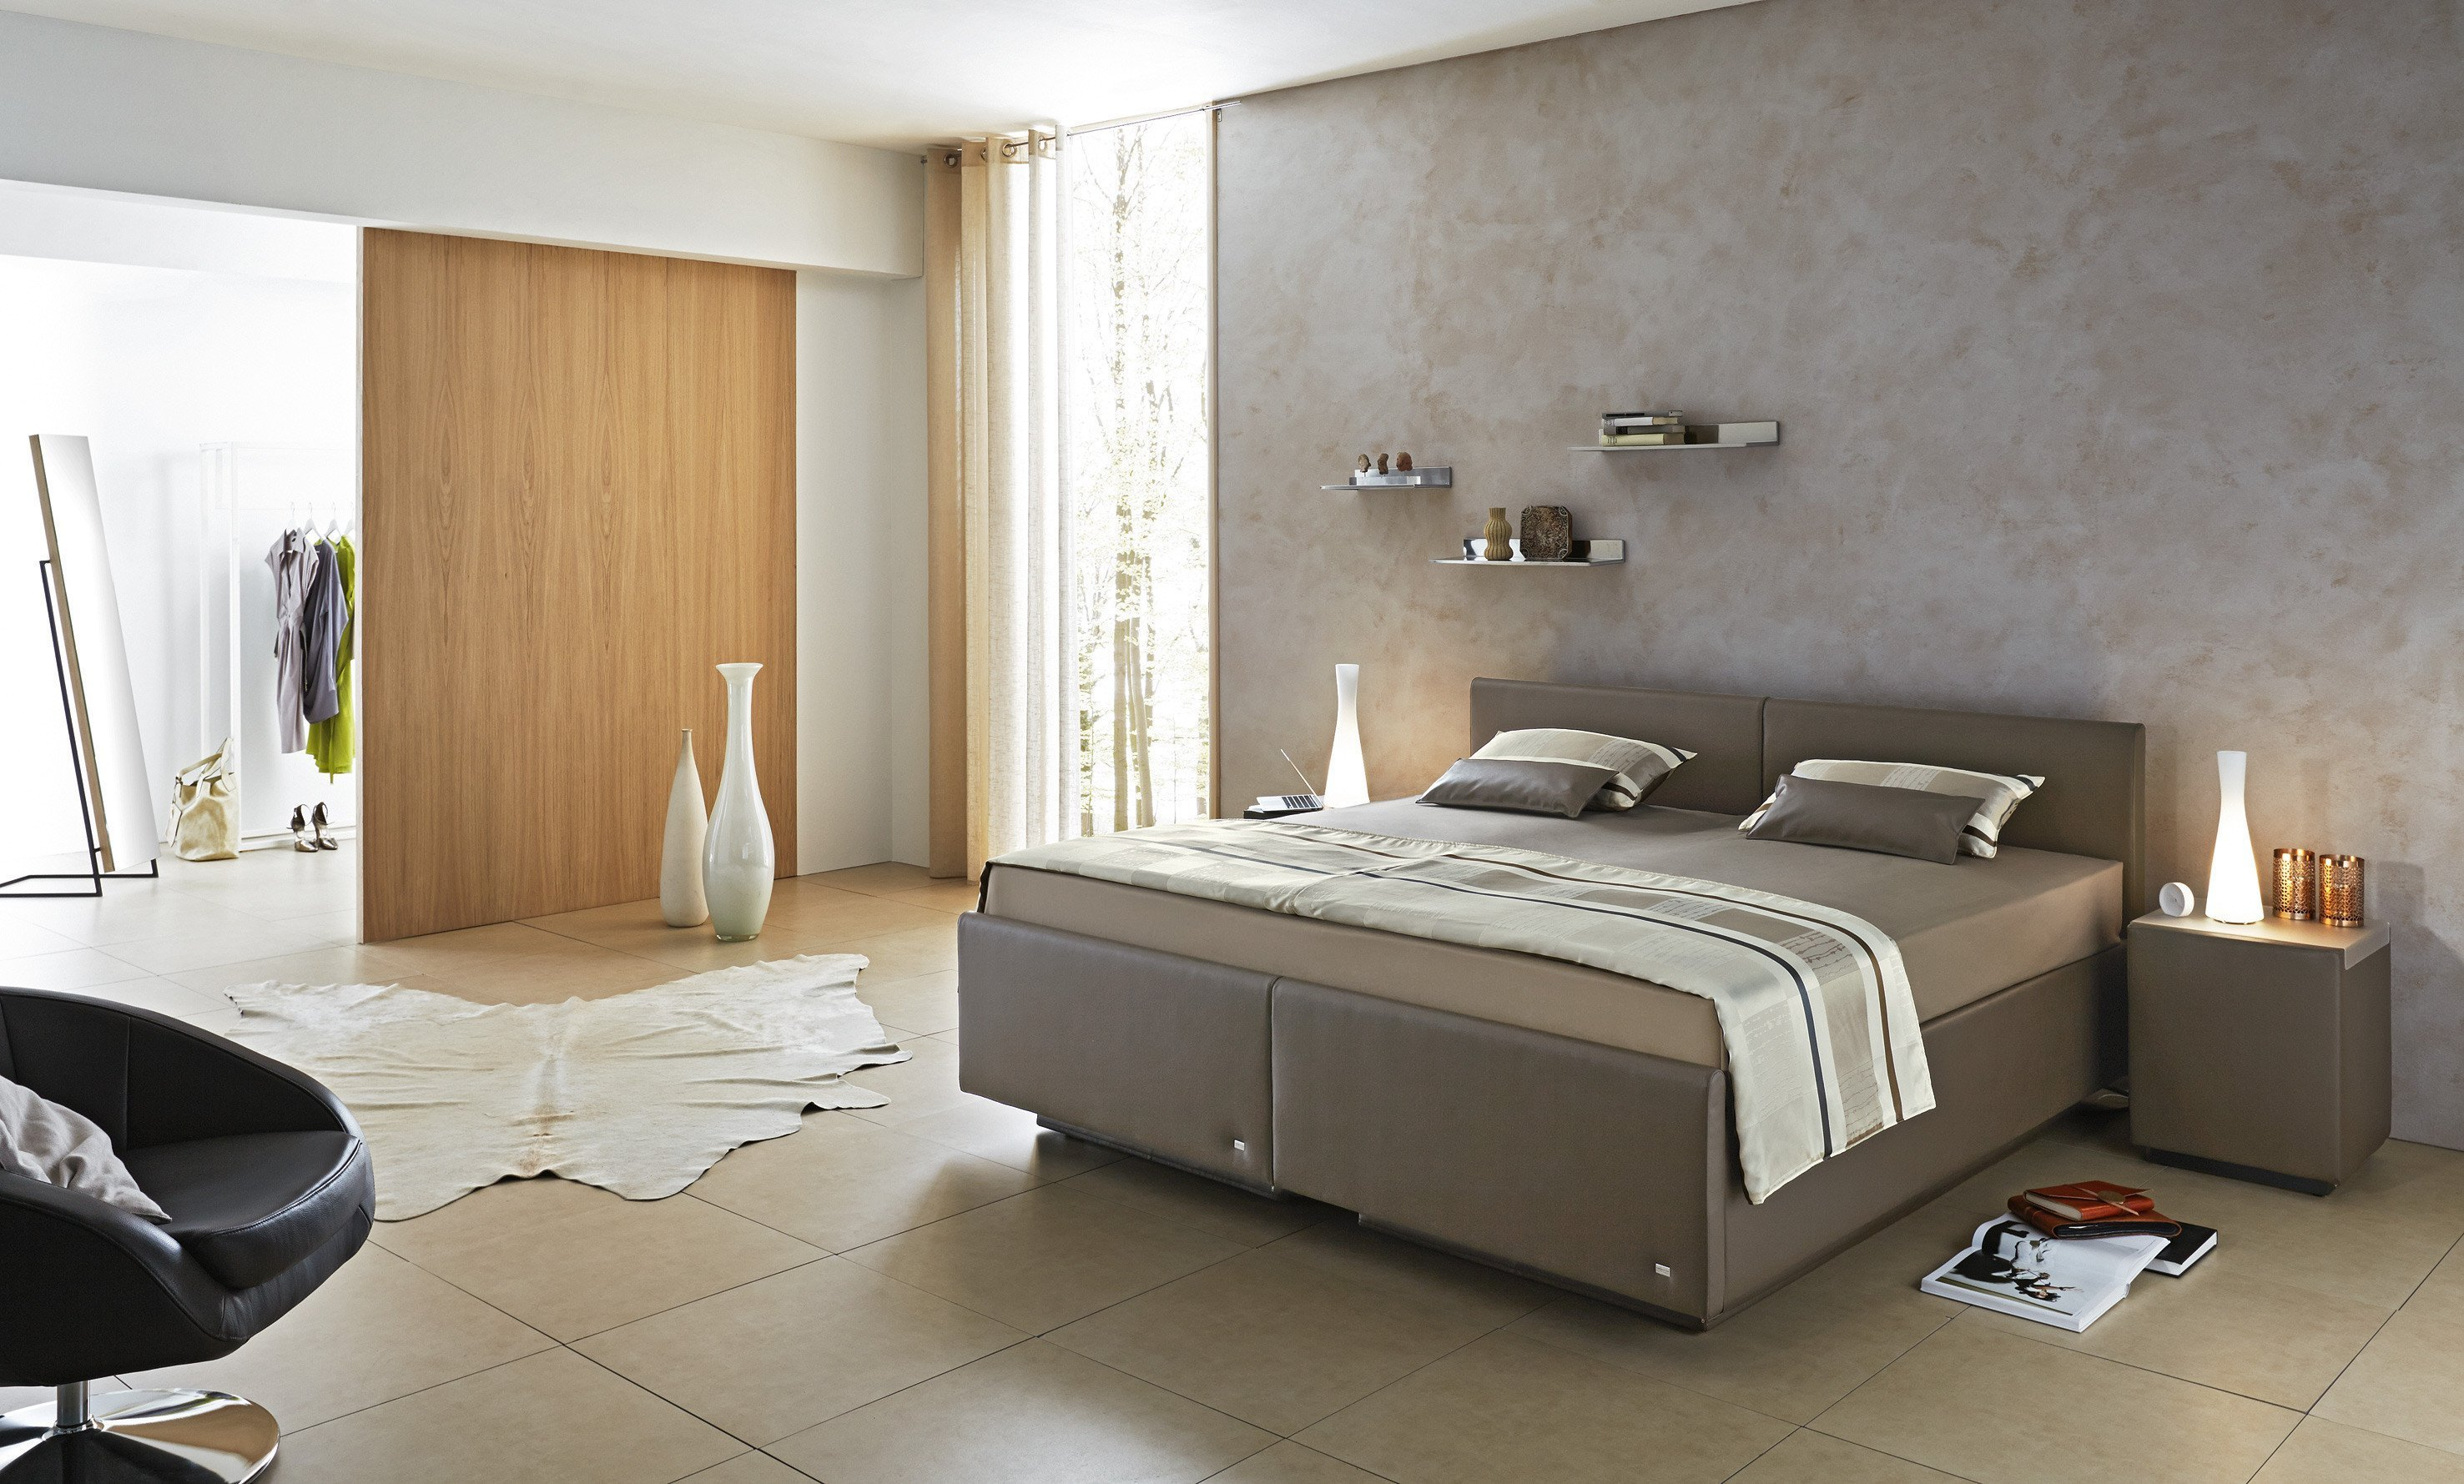 ruf uno due polsterbett in braun m bel letz ihr online shop. Black Bedroom Furniture Sets. Home Design Ideas